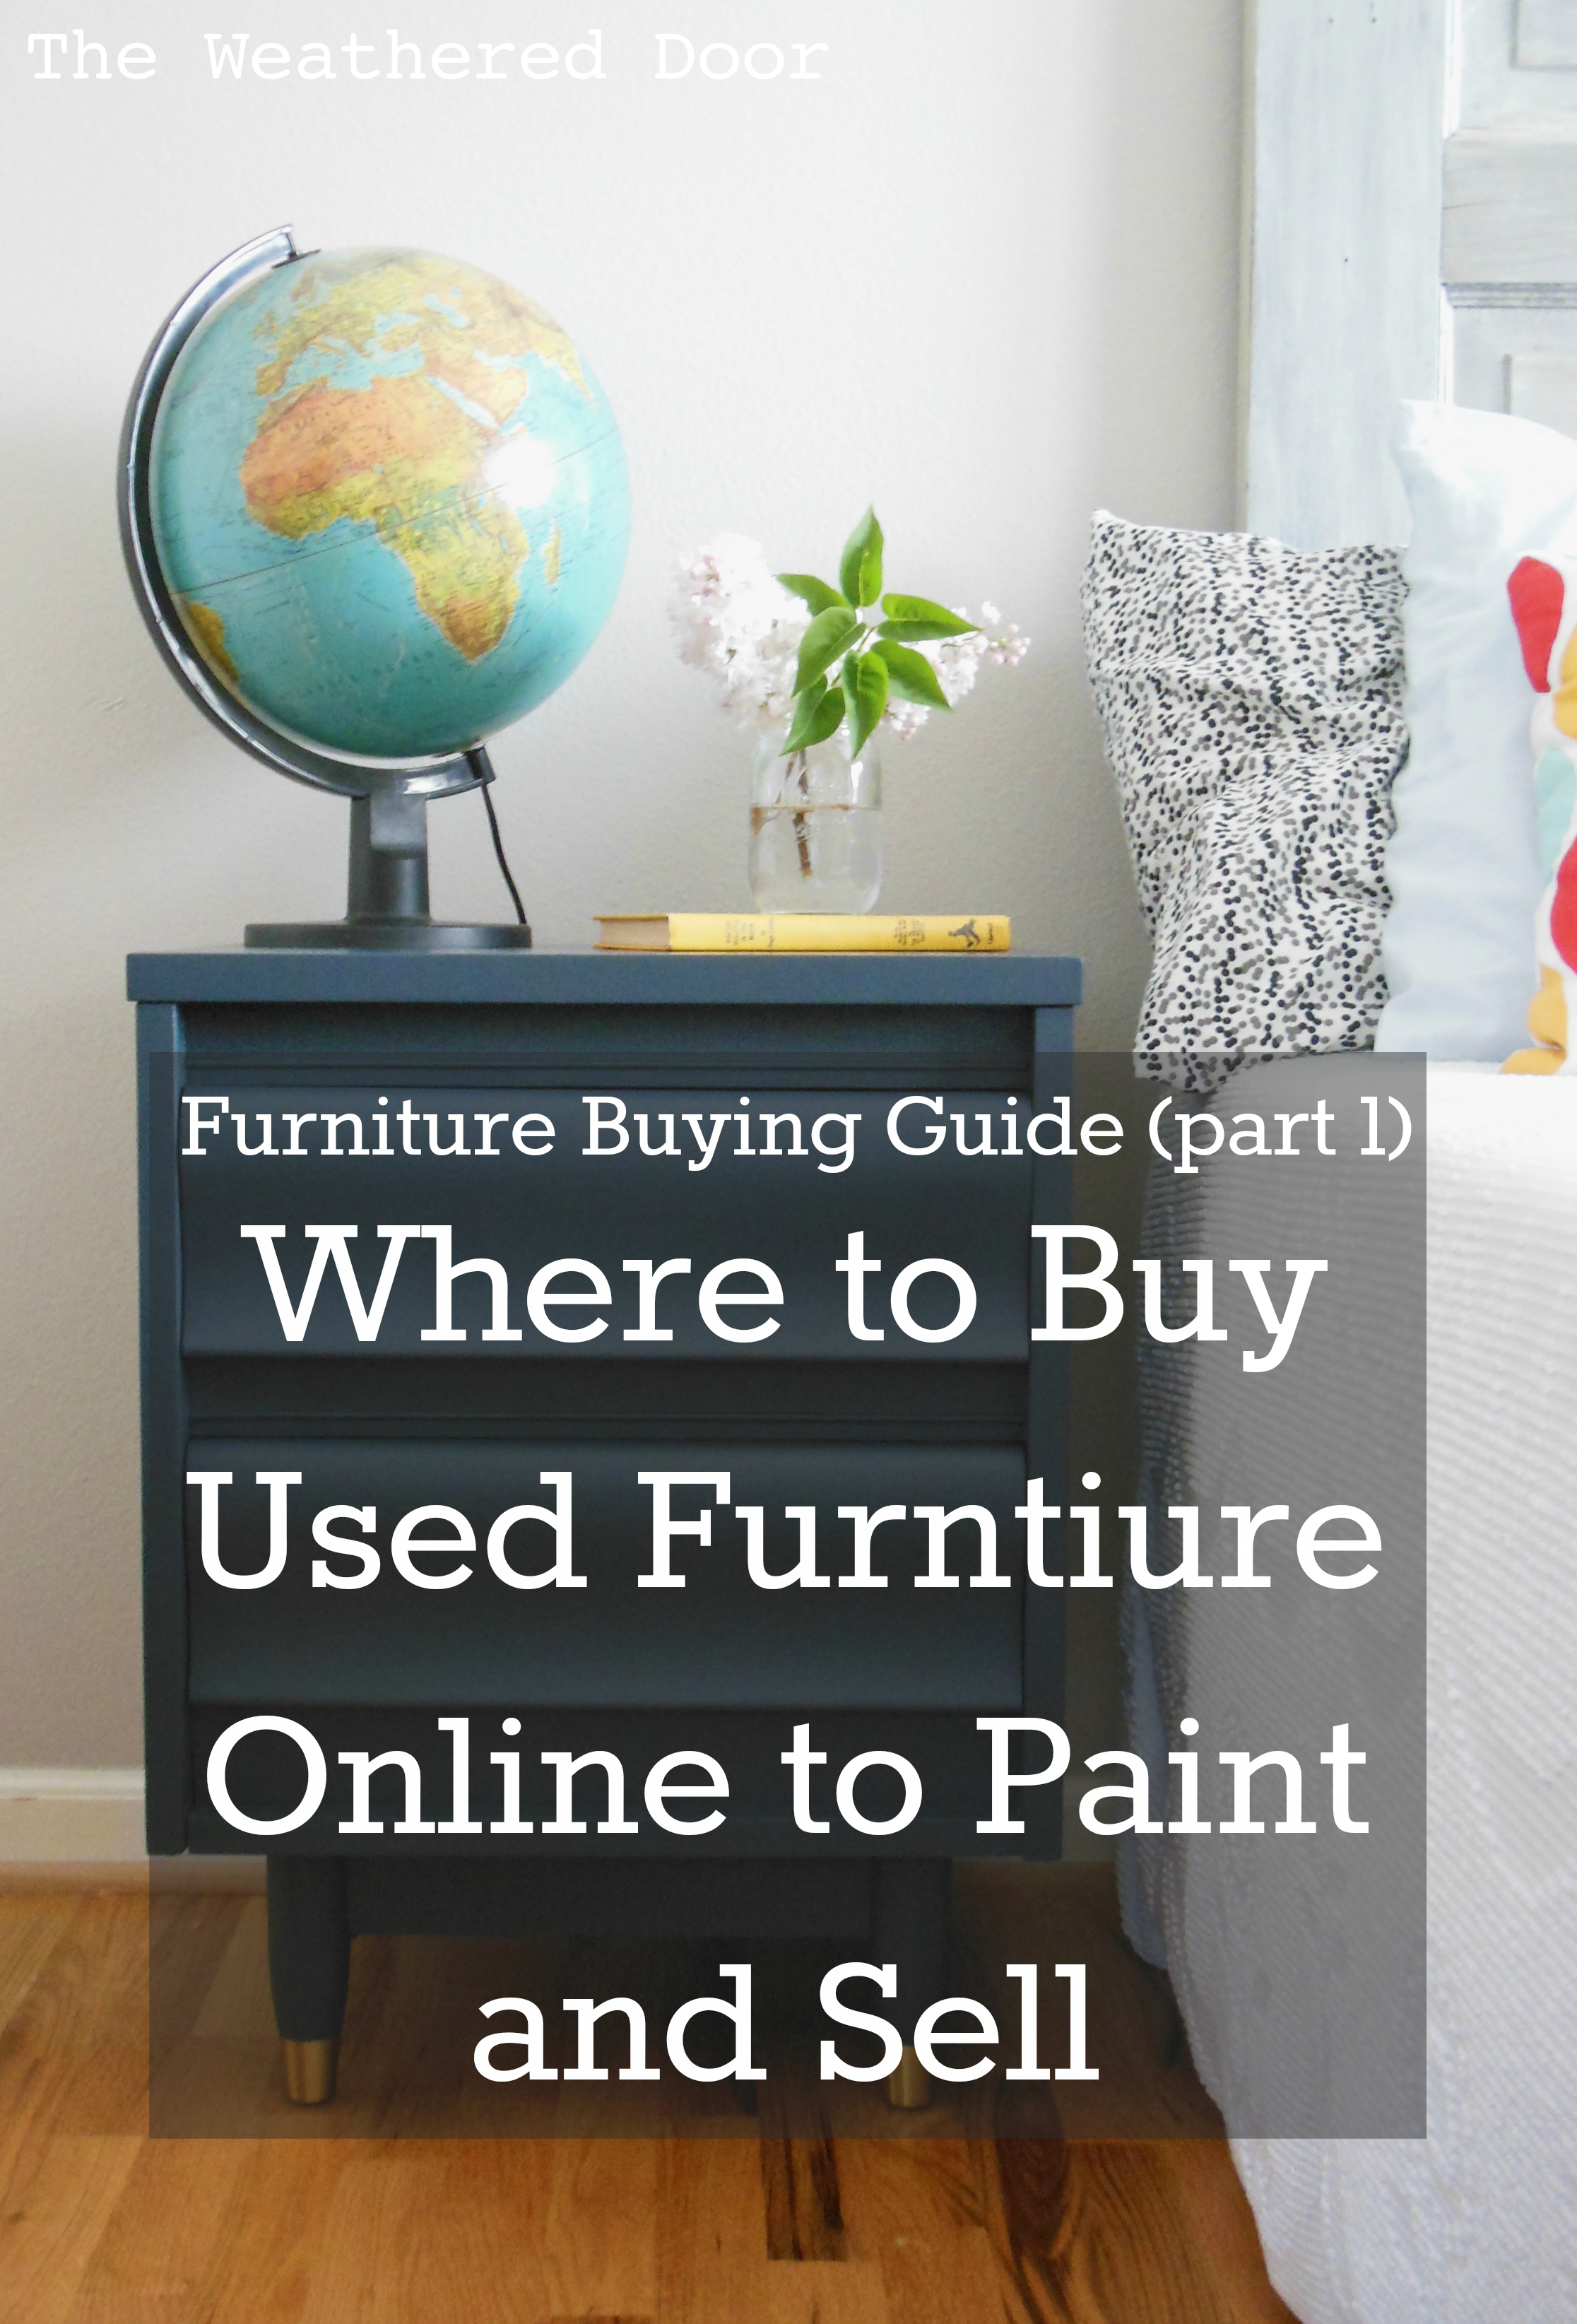 Charmant Furniture Buying Guide: Where To Look For And Buy Used Furniture Pieces  Online To Paint And Sell (Part 1)   The Weathered Door